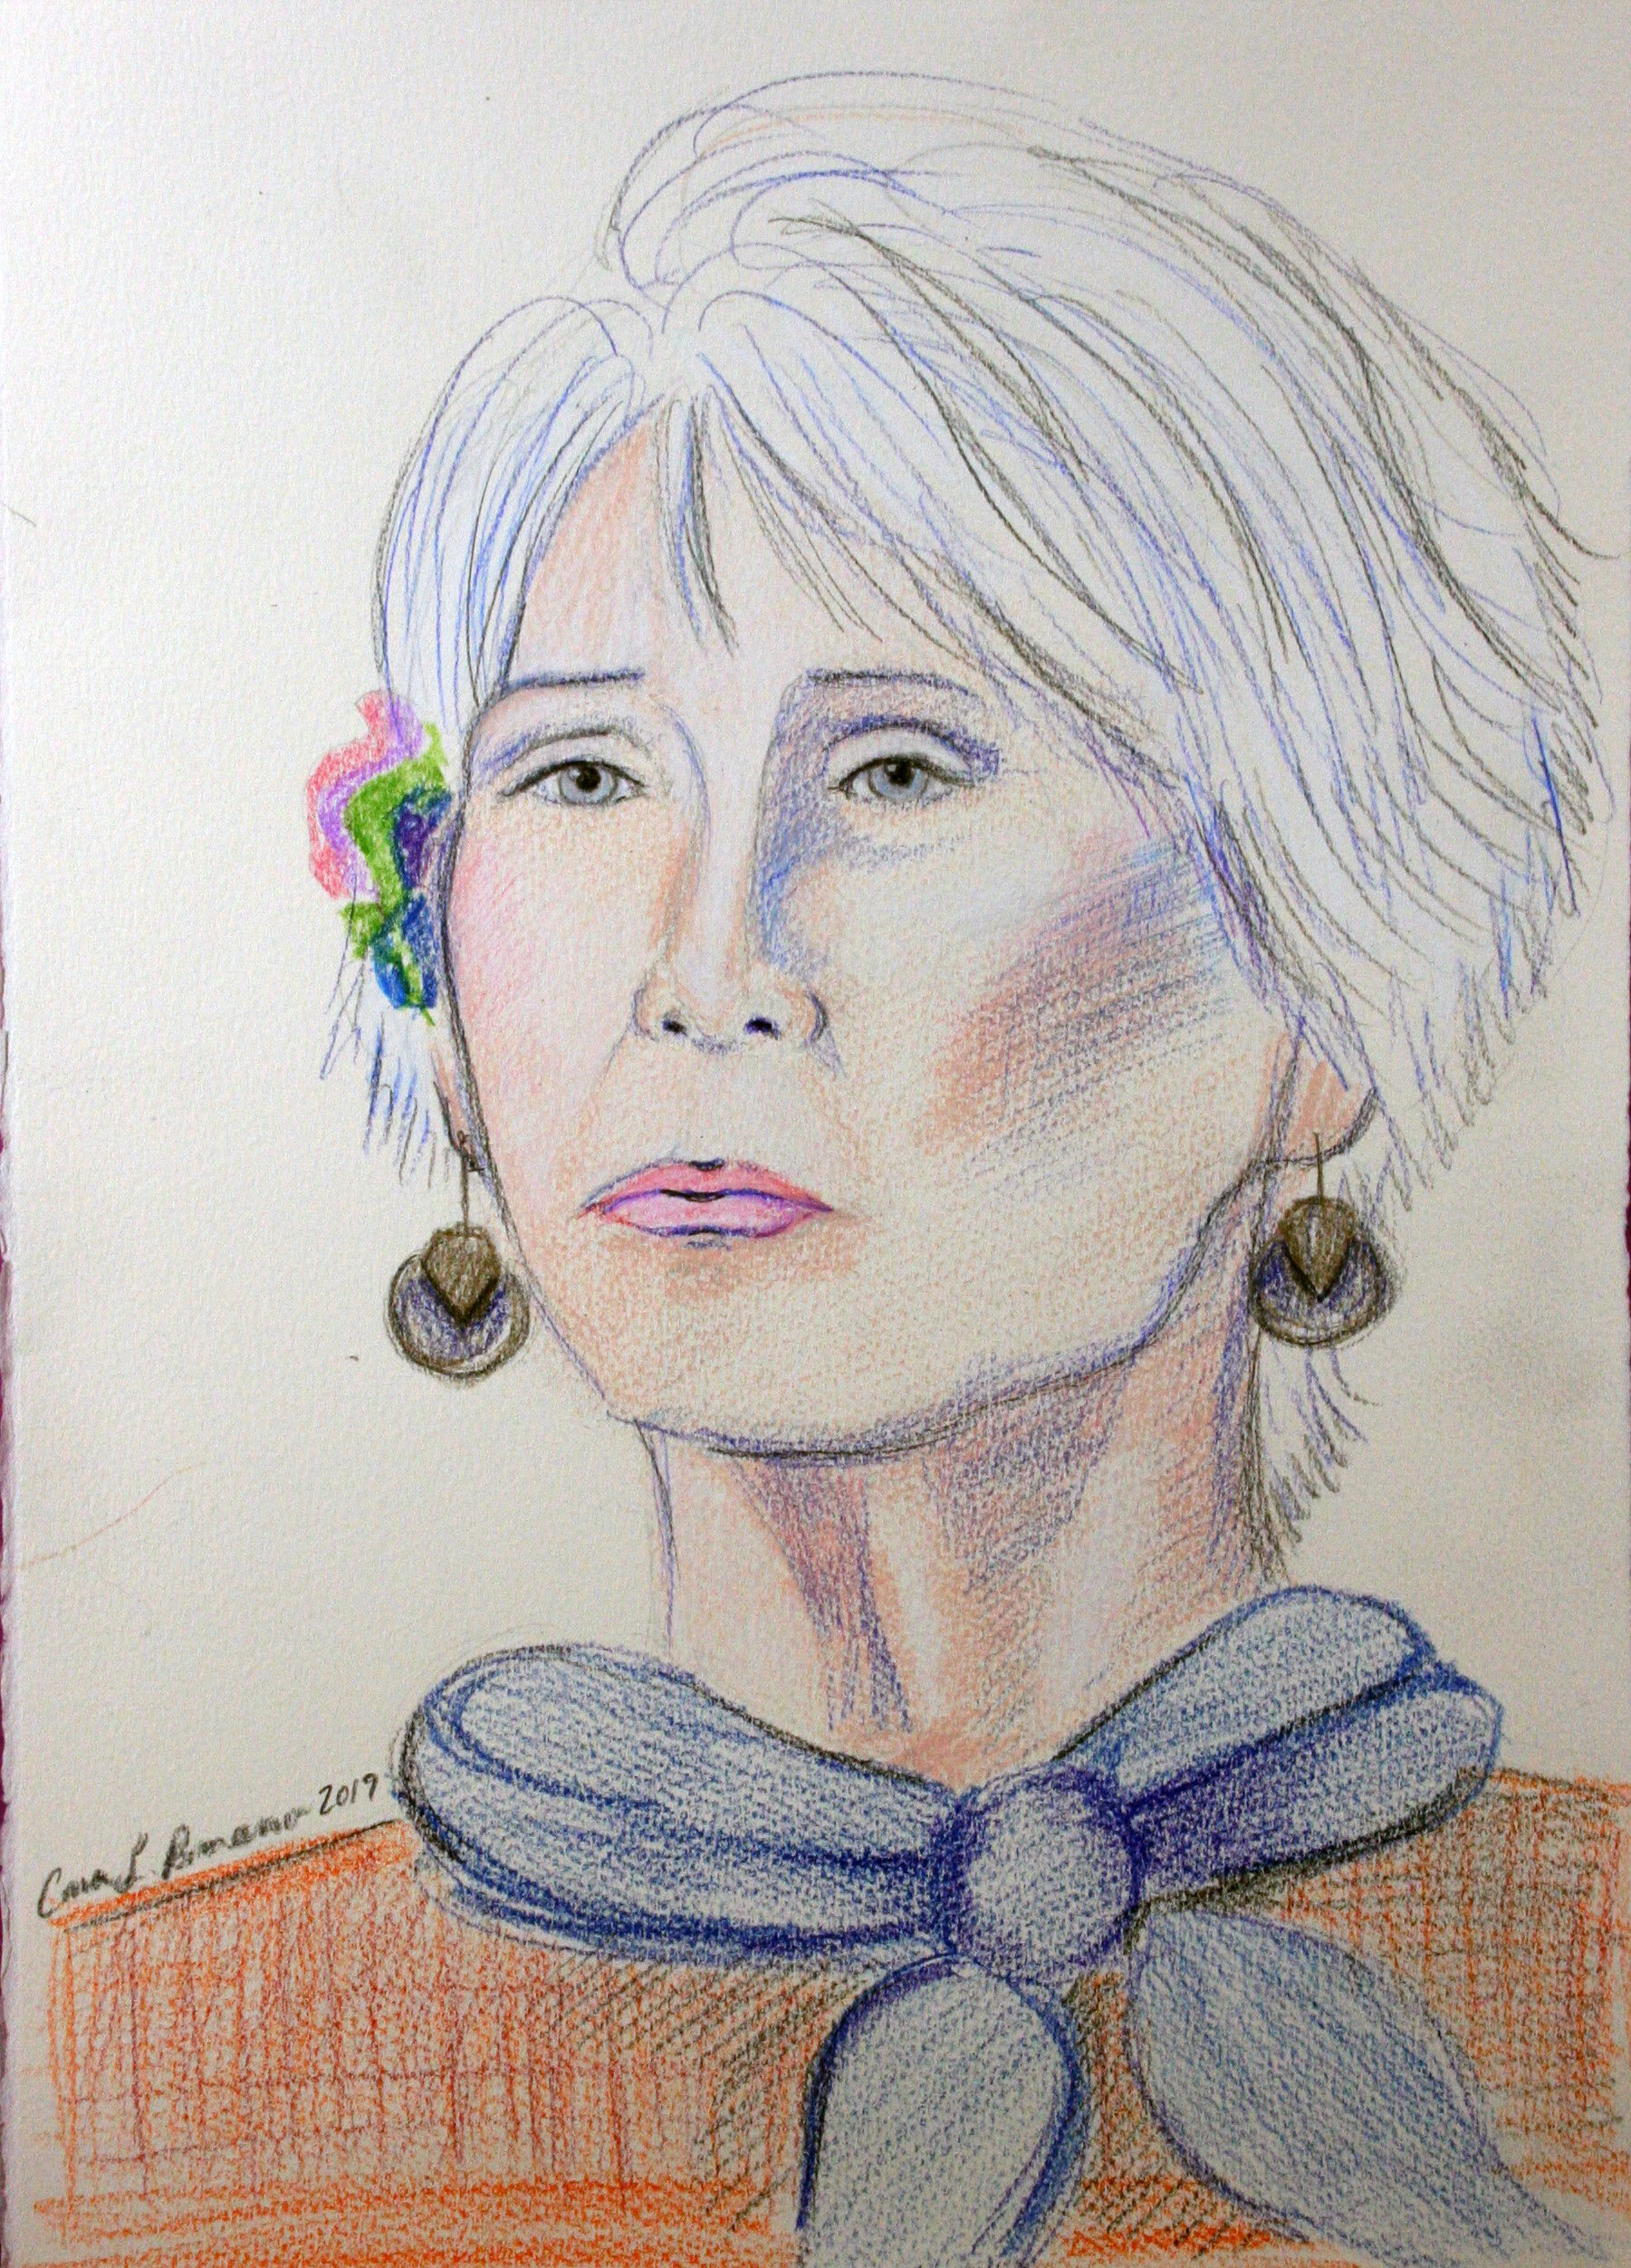 Cara Romano - Colored pencils